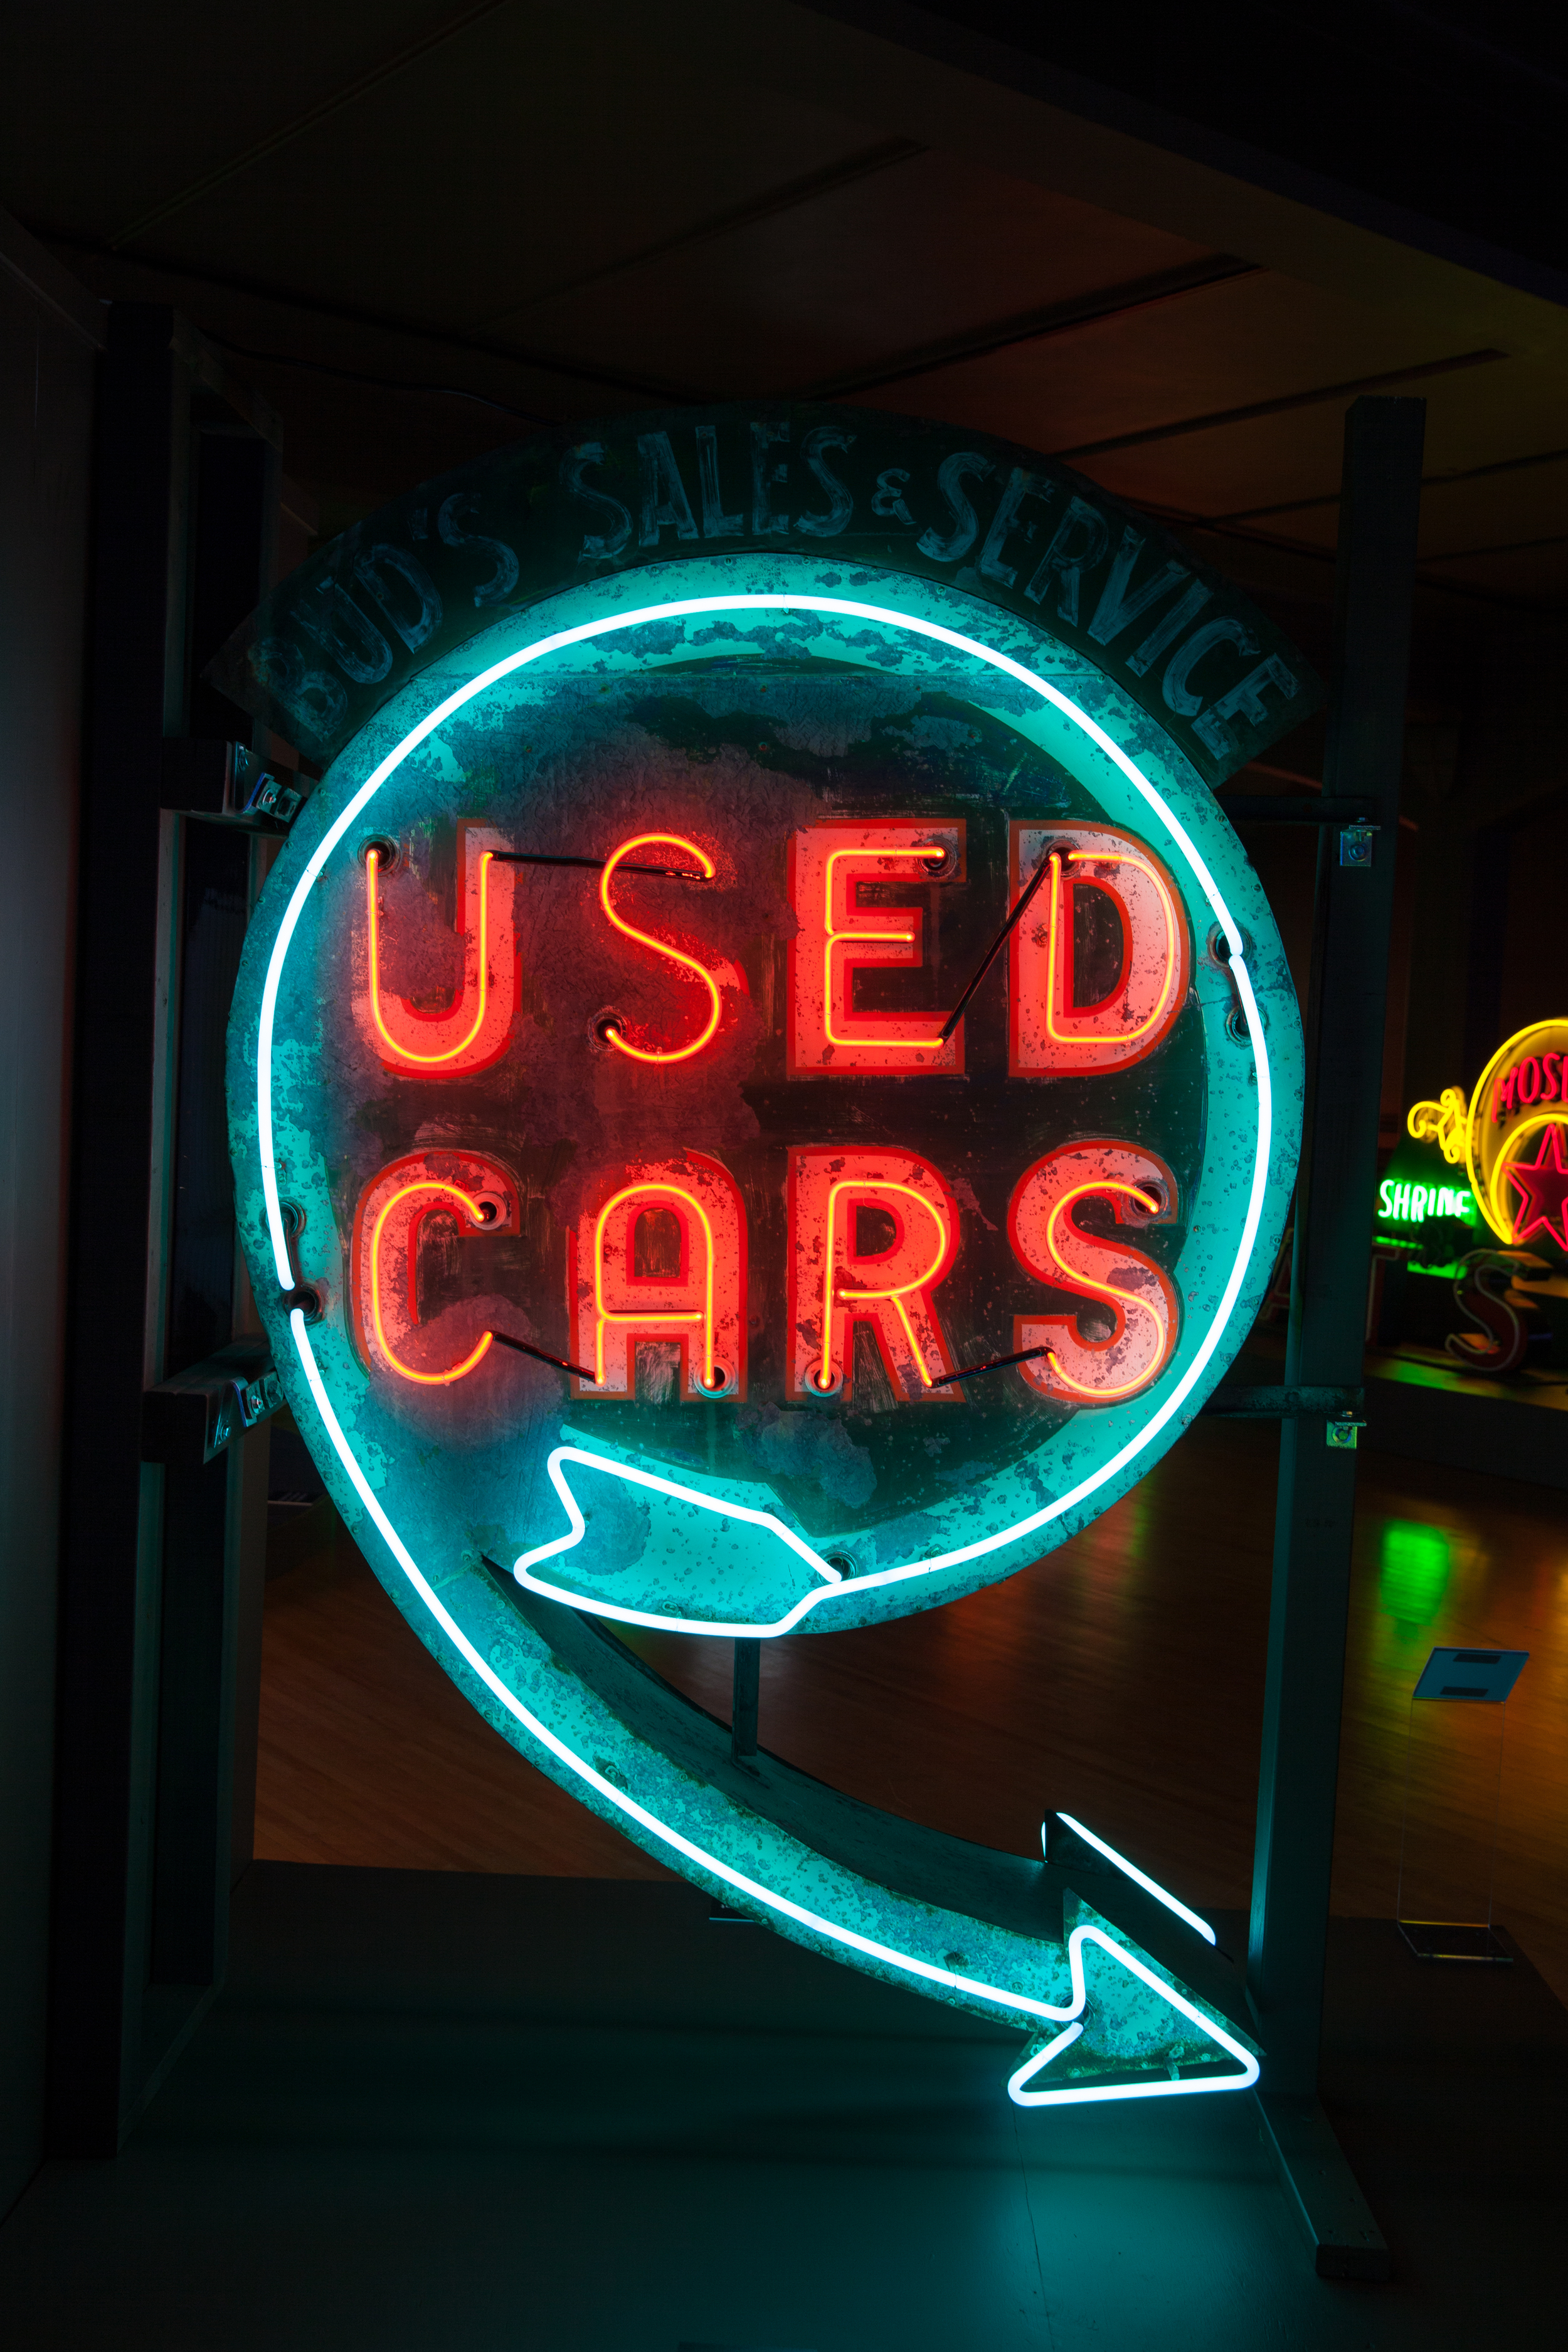 Used Cars - Neon & Paint